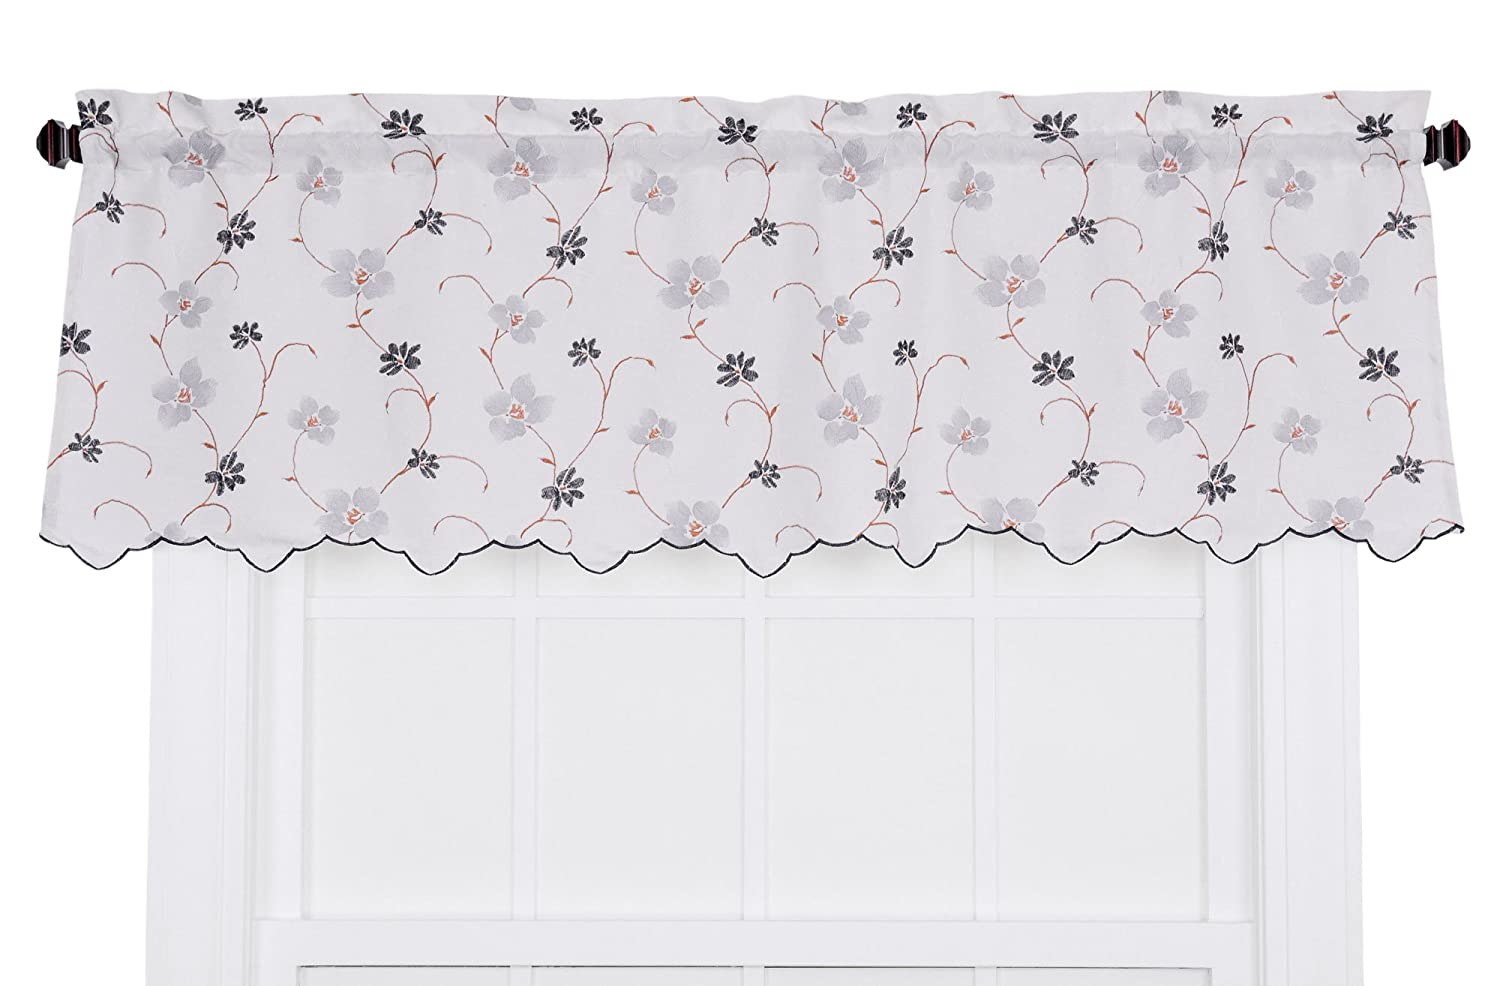 Ellis Curtain Zoe Crushed Taffeta Open Floral Print Curtain Panel, 48 by 63-Inch, Black 730462112644